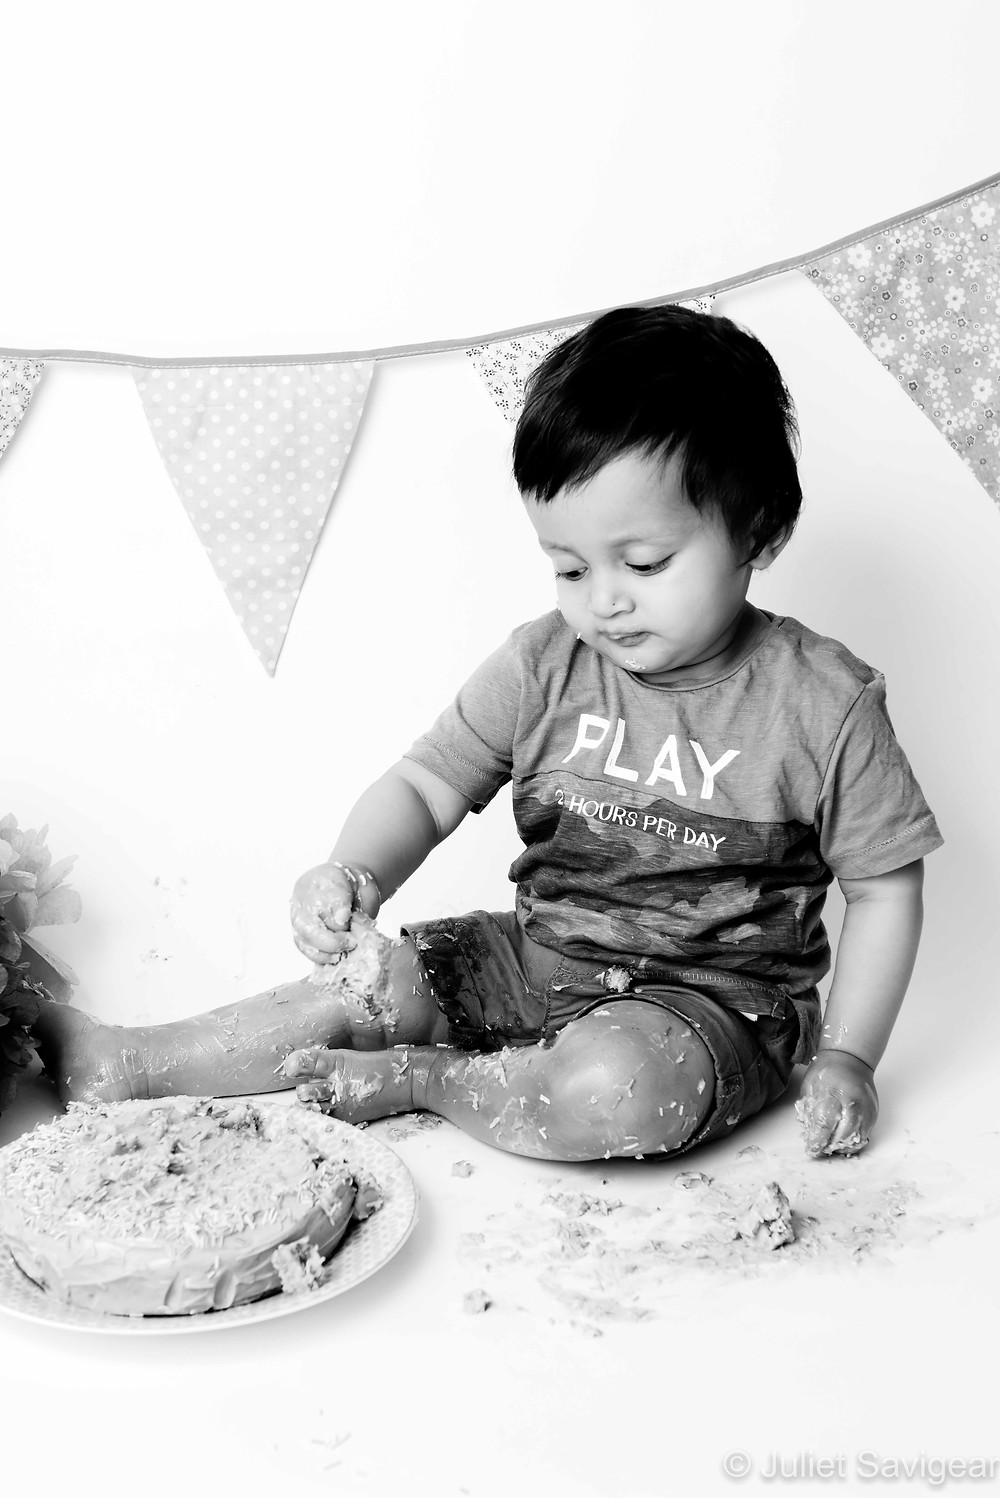 Getting messy with the cake smash